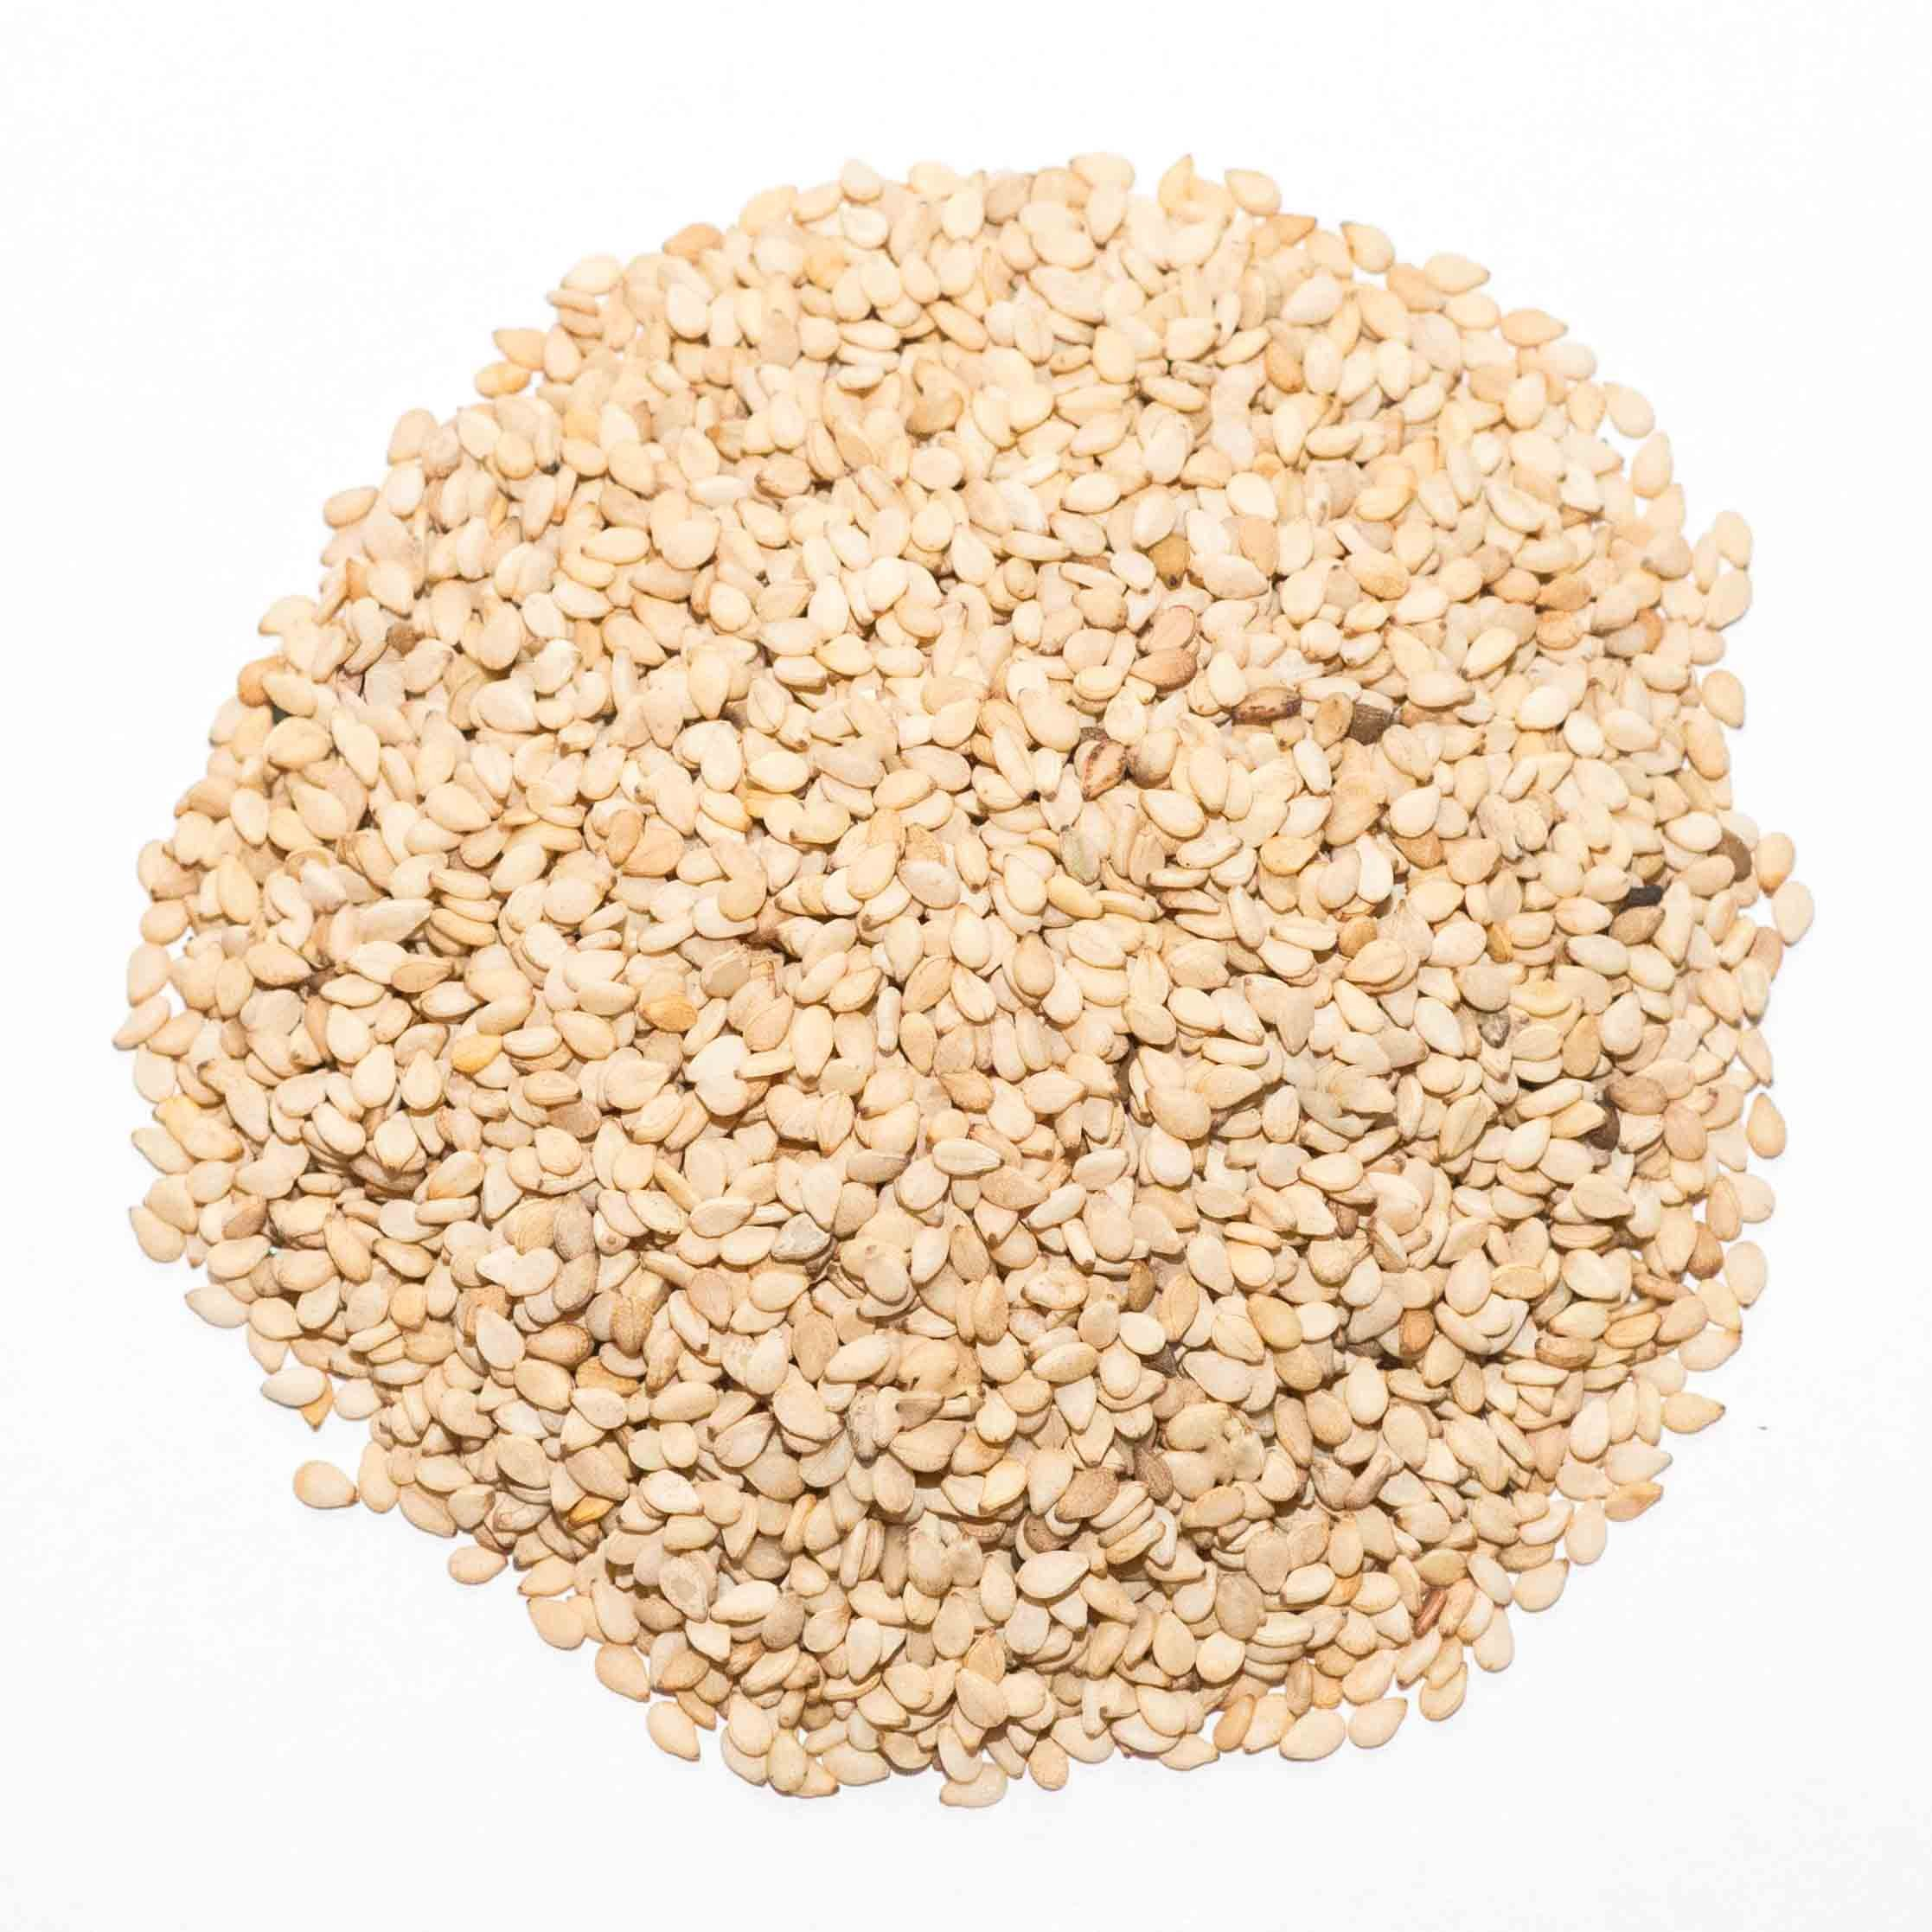 Bulk Seeds Organic Natural Sesame Raw - 25 Lb. by Bulk Seeds